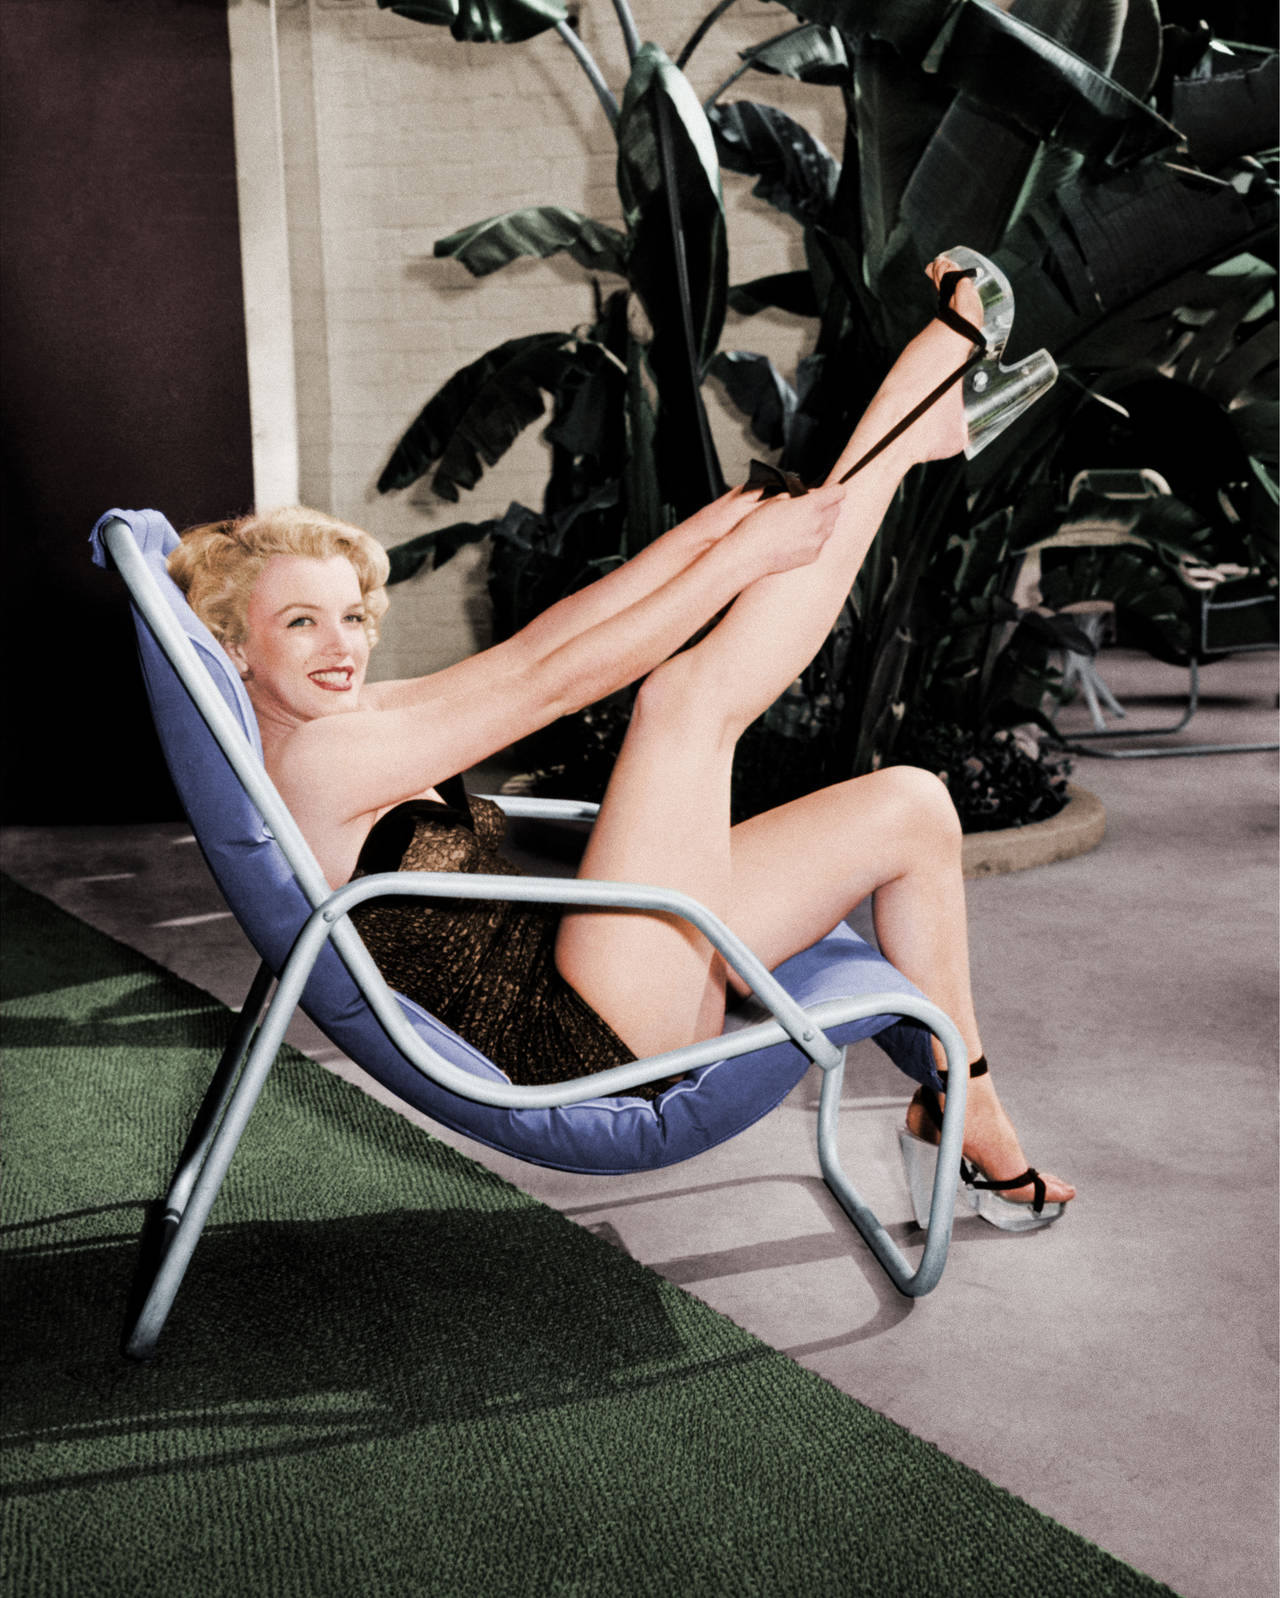 Frank Worth Color Photograph - Marilyn Monroe Poolside with Leg Up, Los Angeles Fine Art Print